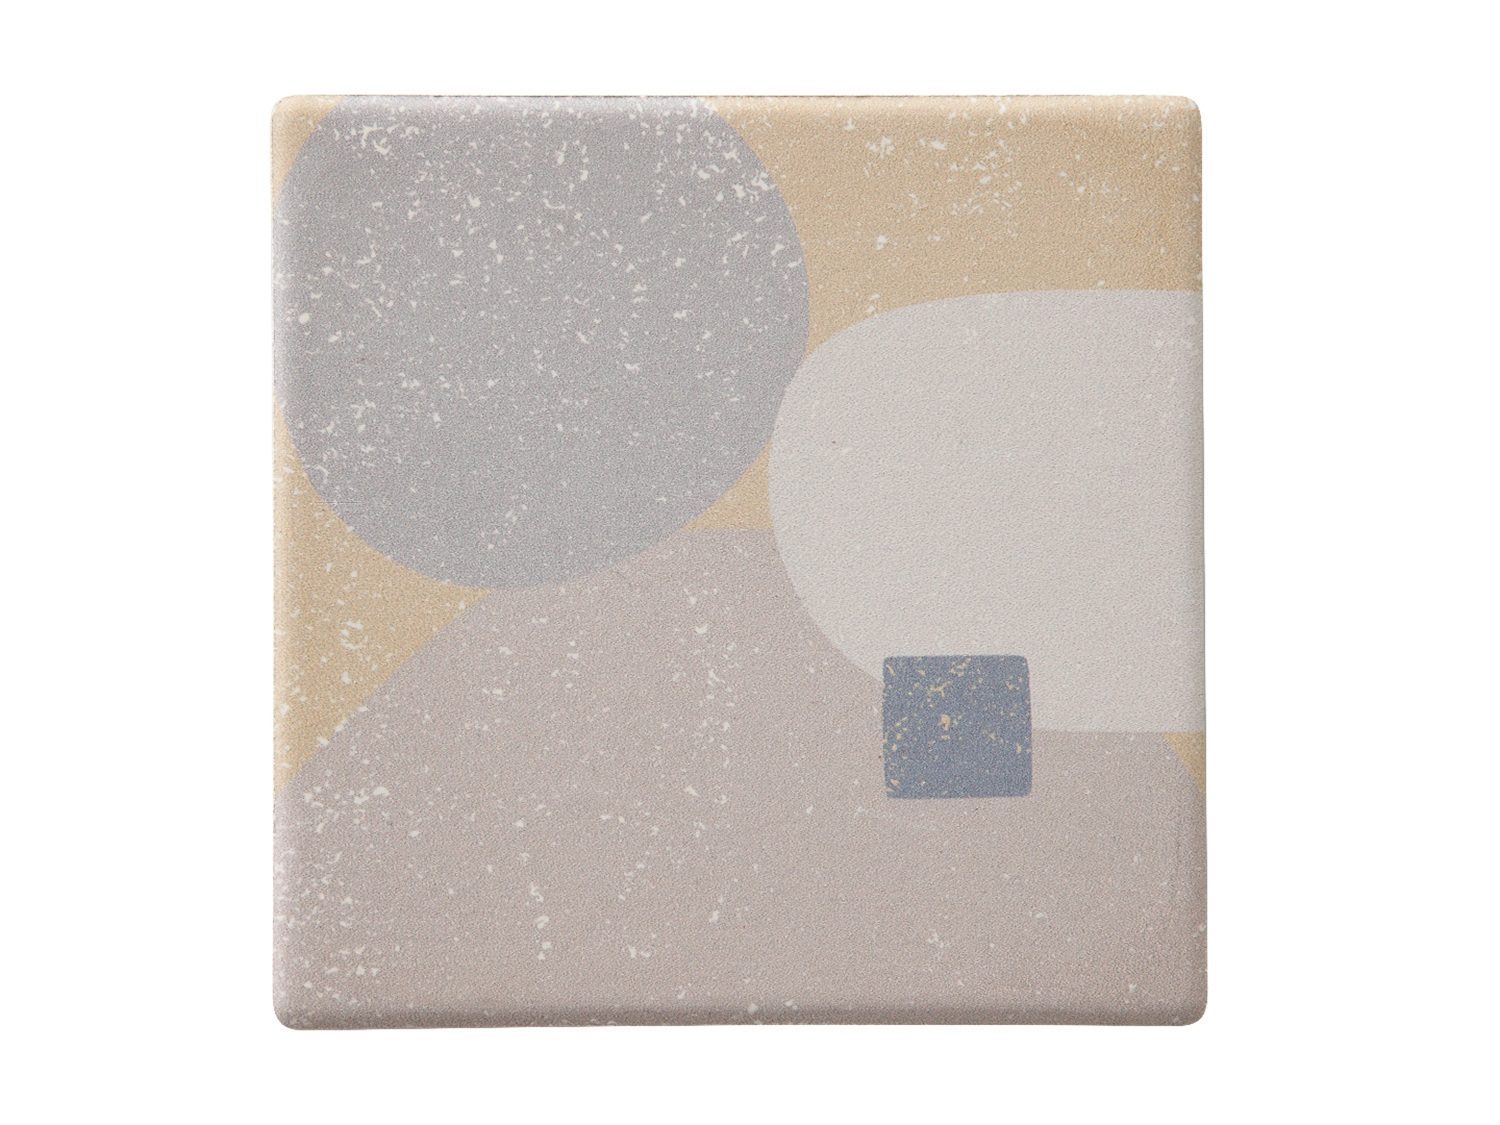 Maxwell & Williams Medina Malmo 9Cm Ceramic Square Tile Coaster